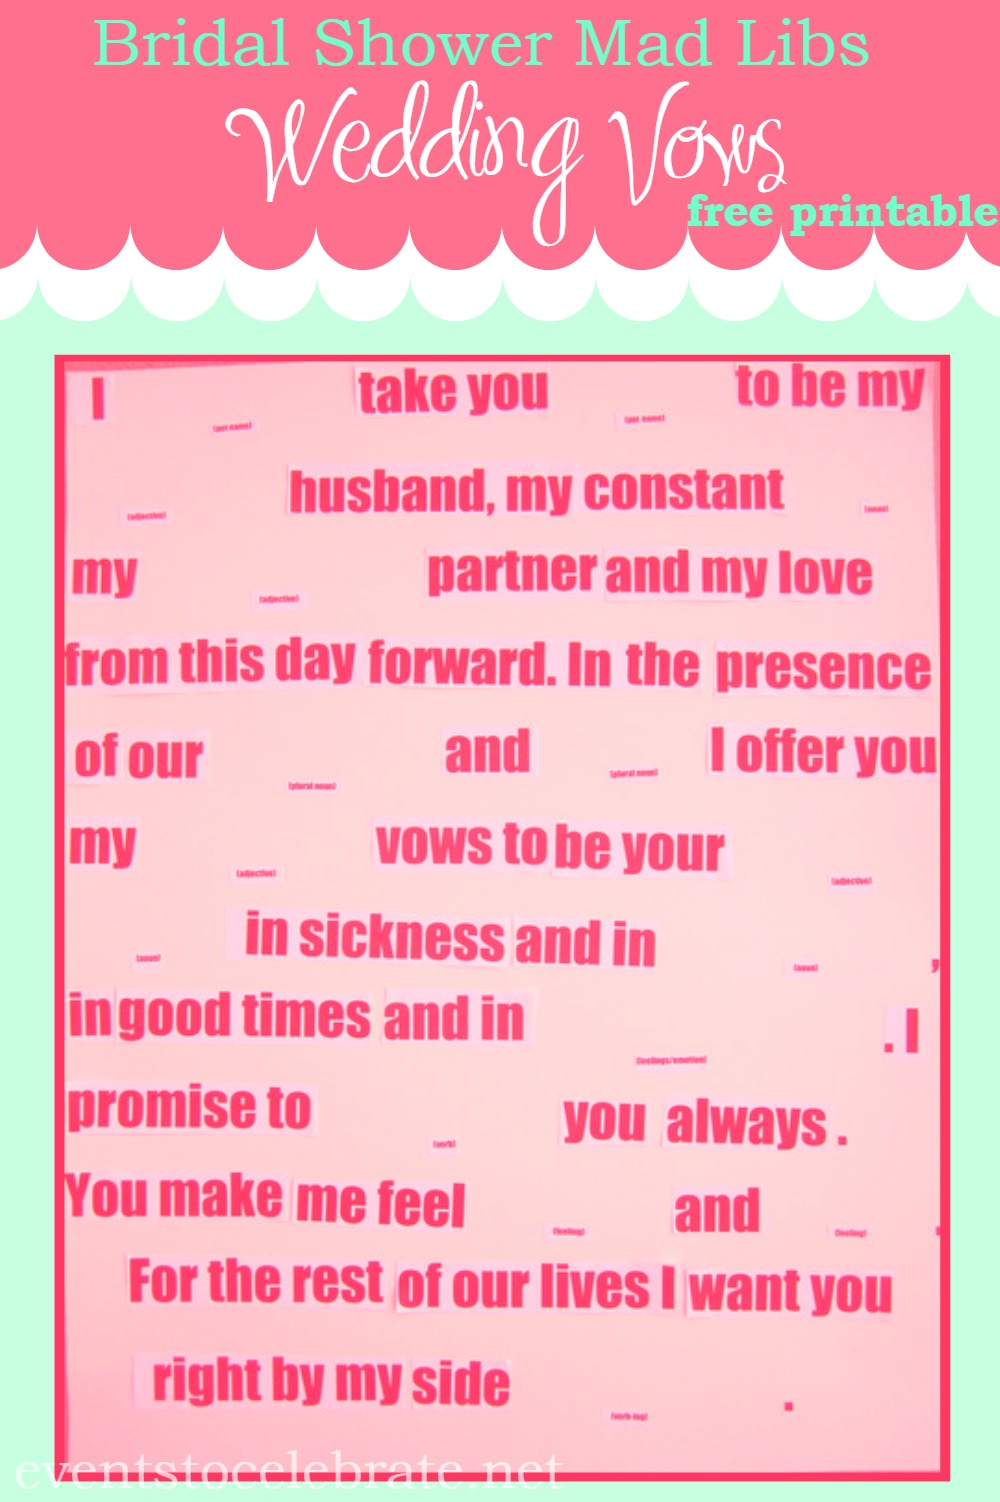 Mad Libs Wedding Vows - events to CELEBRATE!